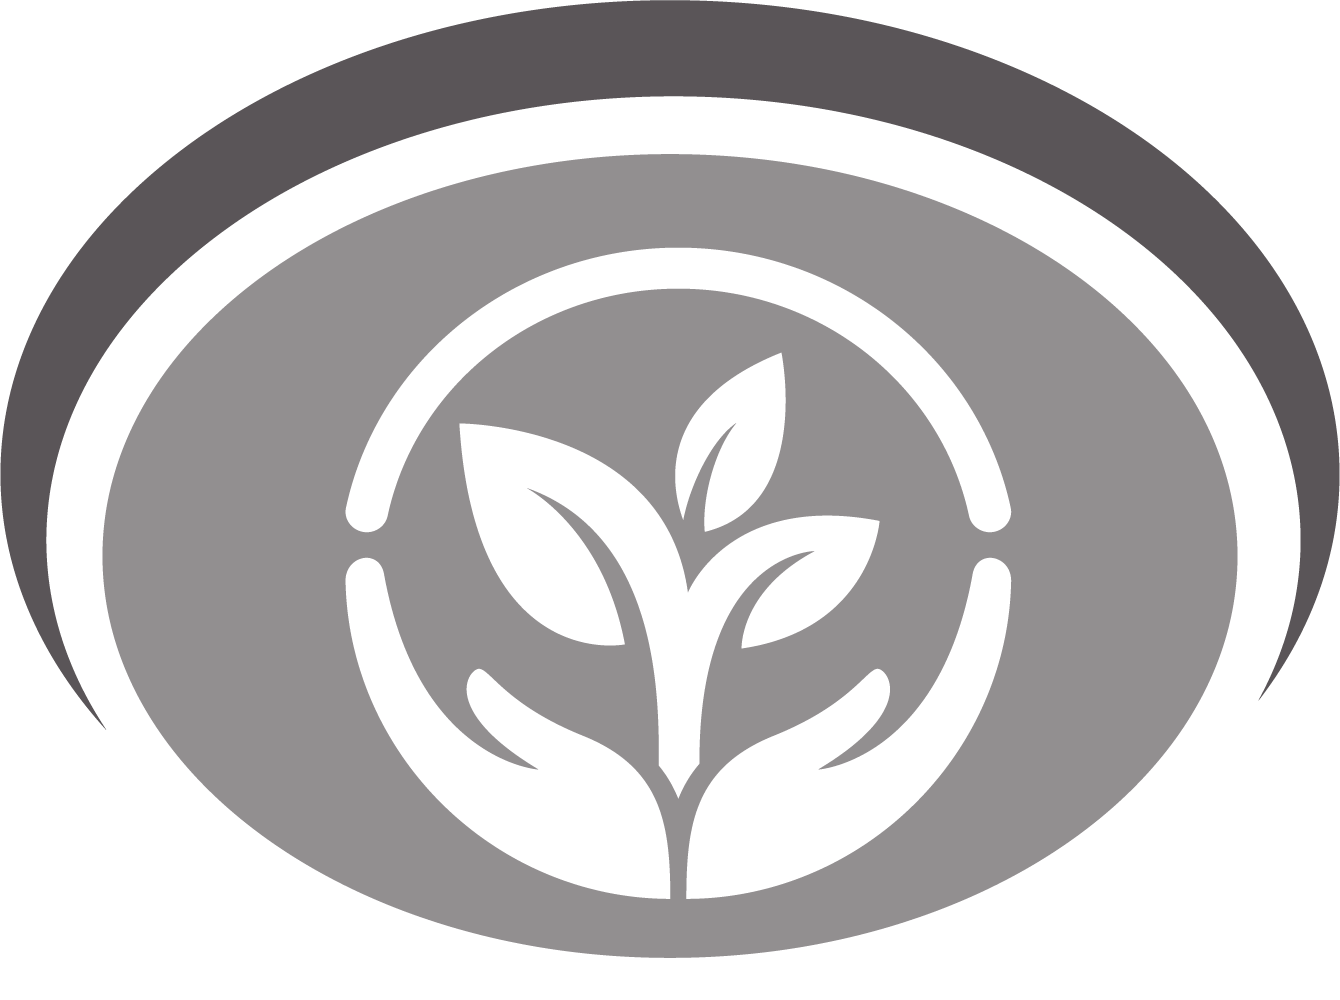 ccaps logo of hands holding a lotus flower